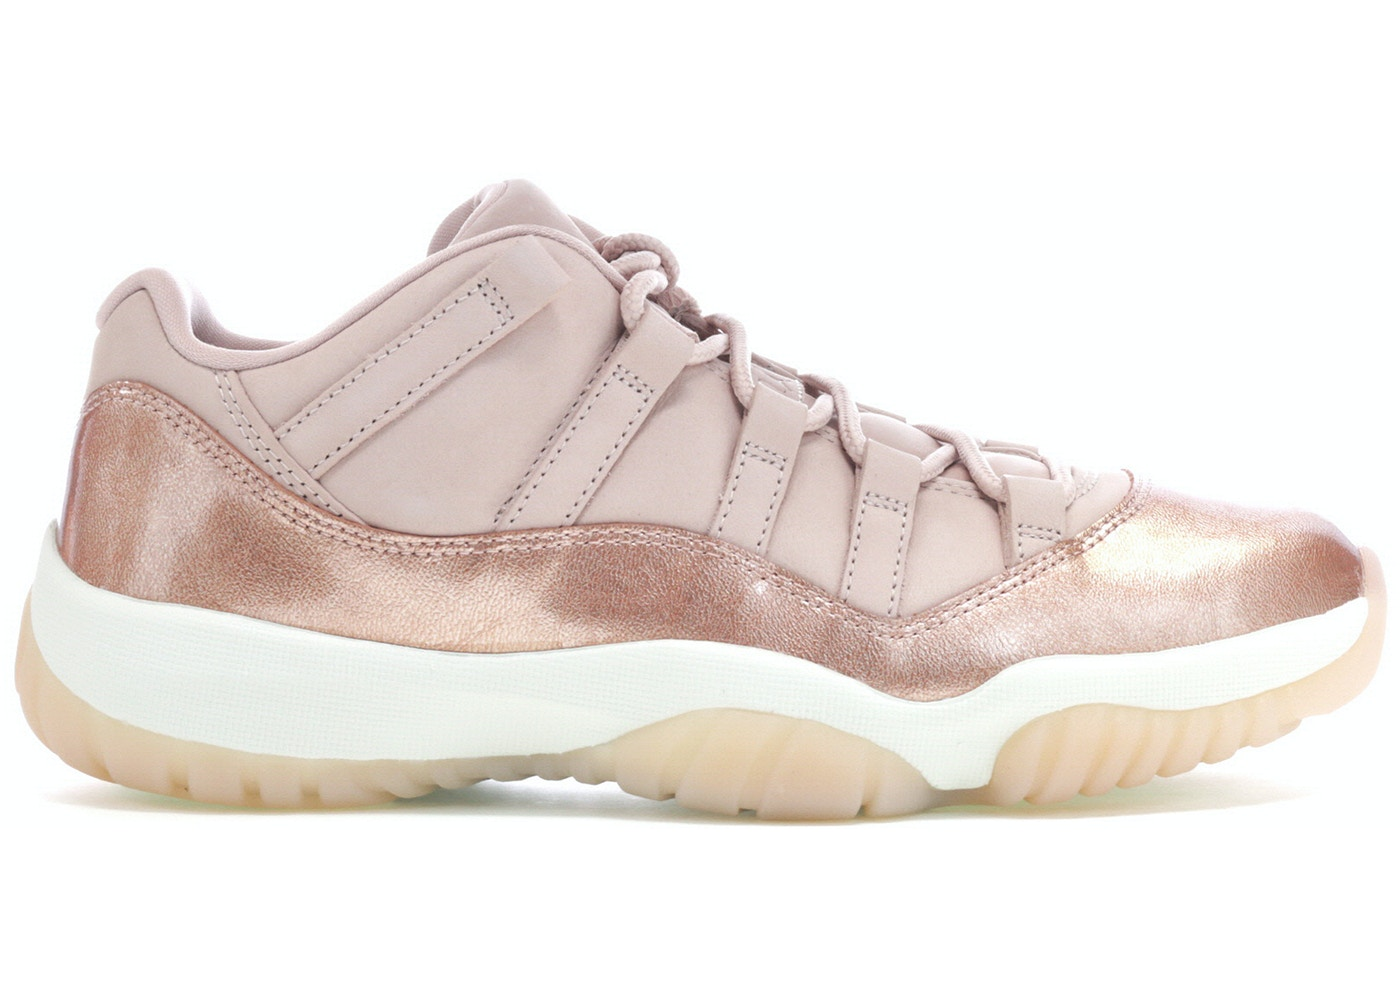 25db25aead4d Jordan 11 Retro Low Rose Gold (W) - AH7860-105